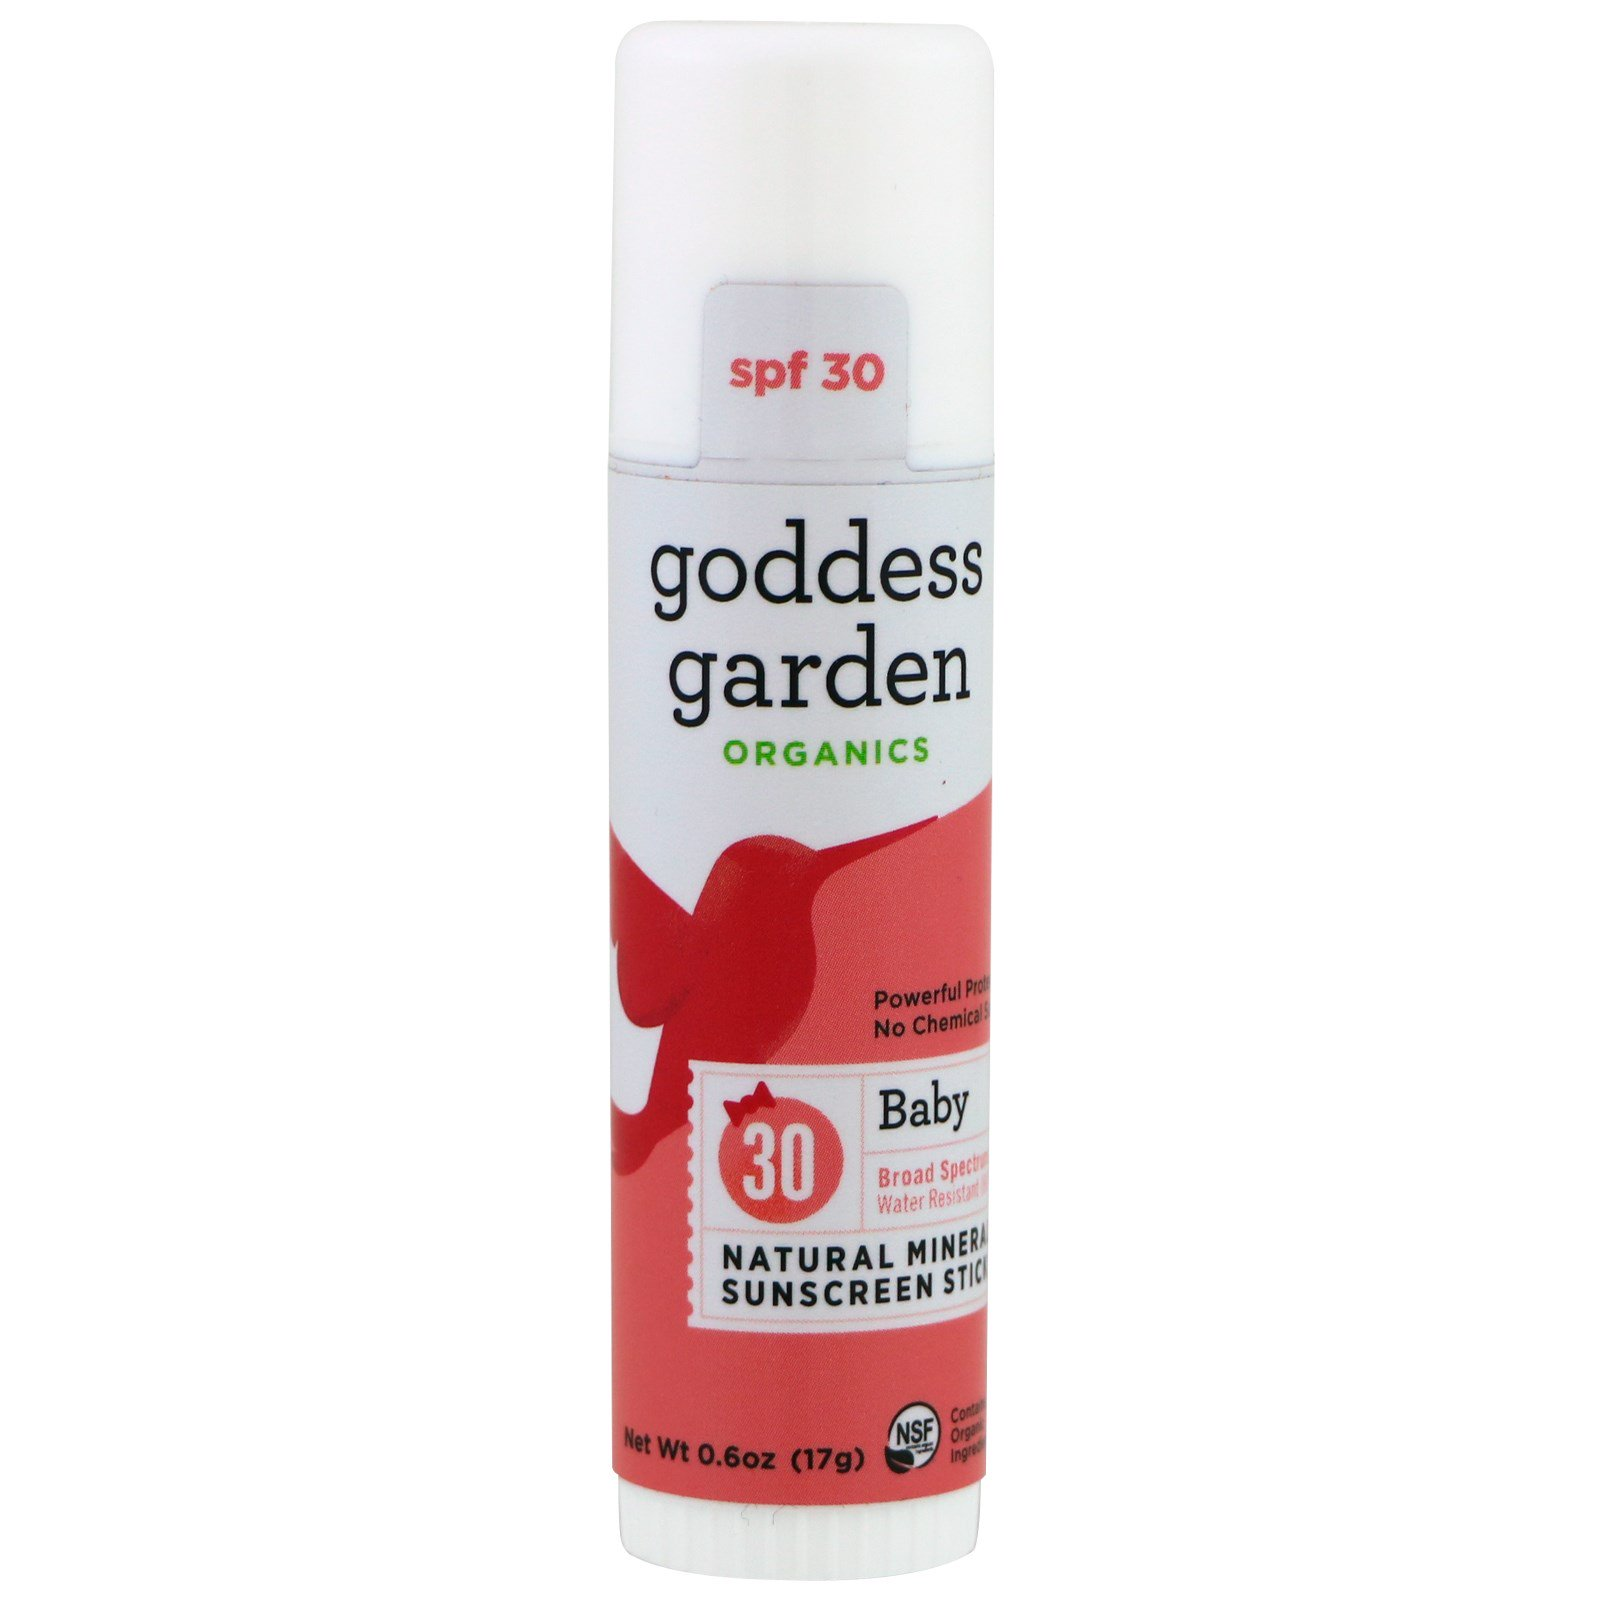 Goddess Garden, Organics, Natural Mineral Sunscreen Stick, Baby, SPF 30, 0.6 oz (17 g)